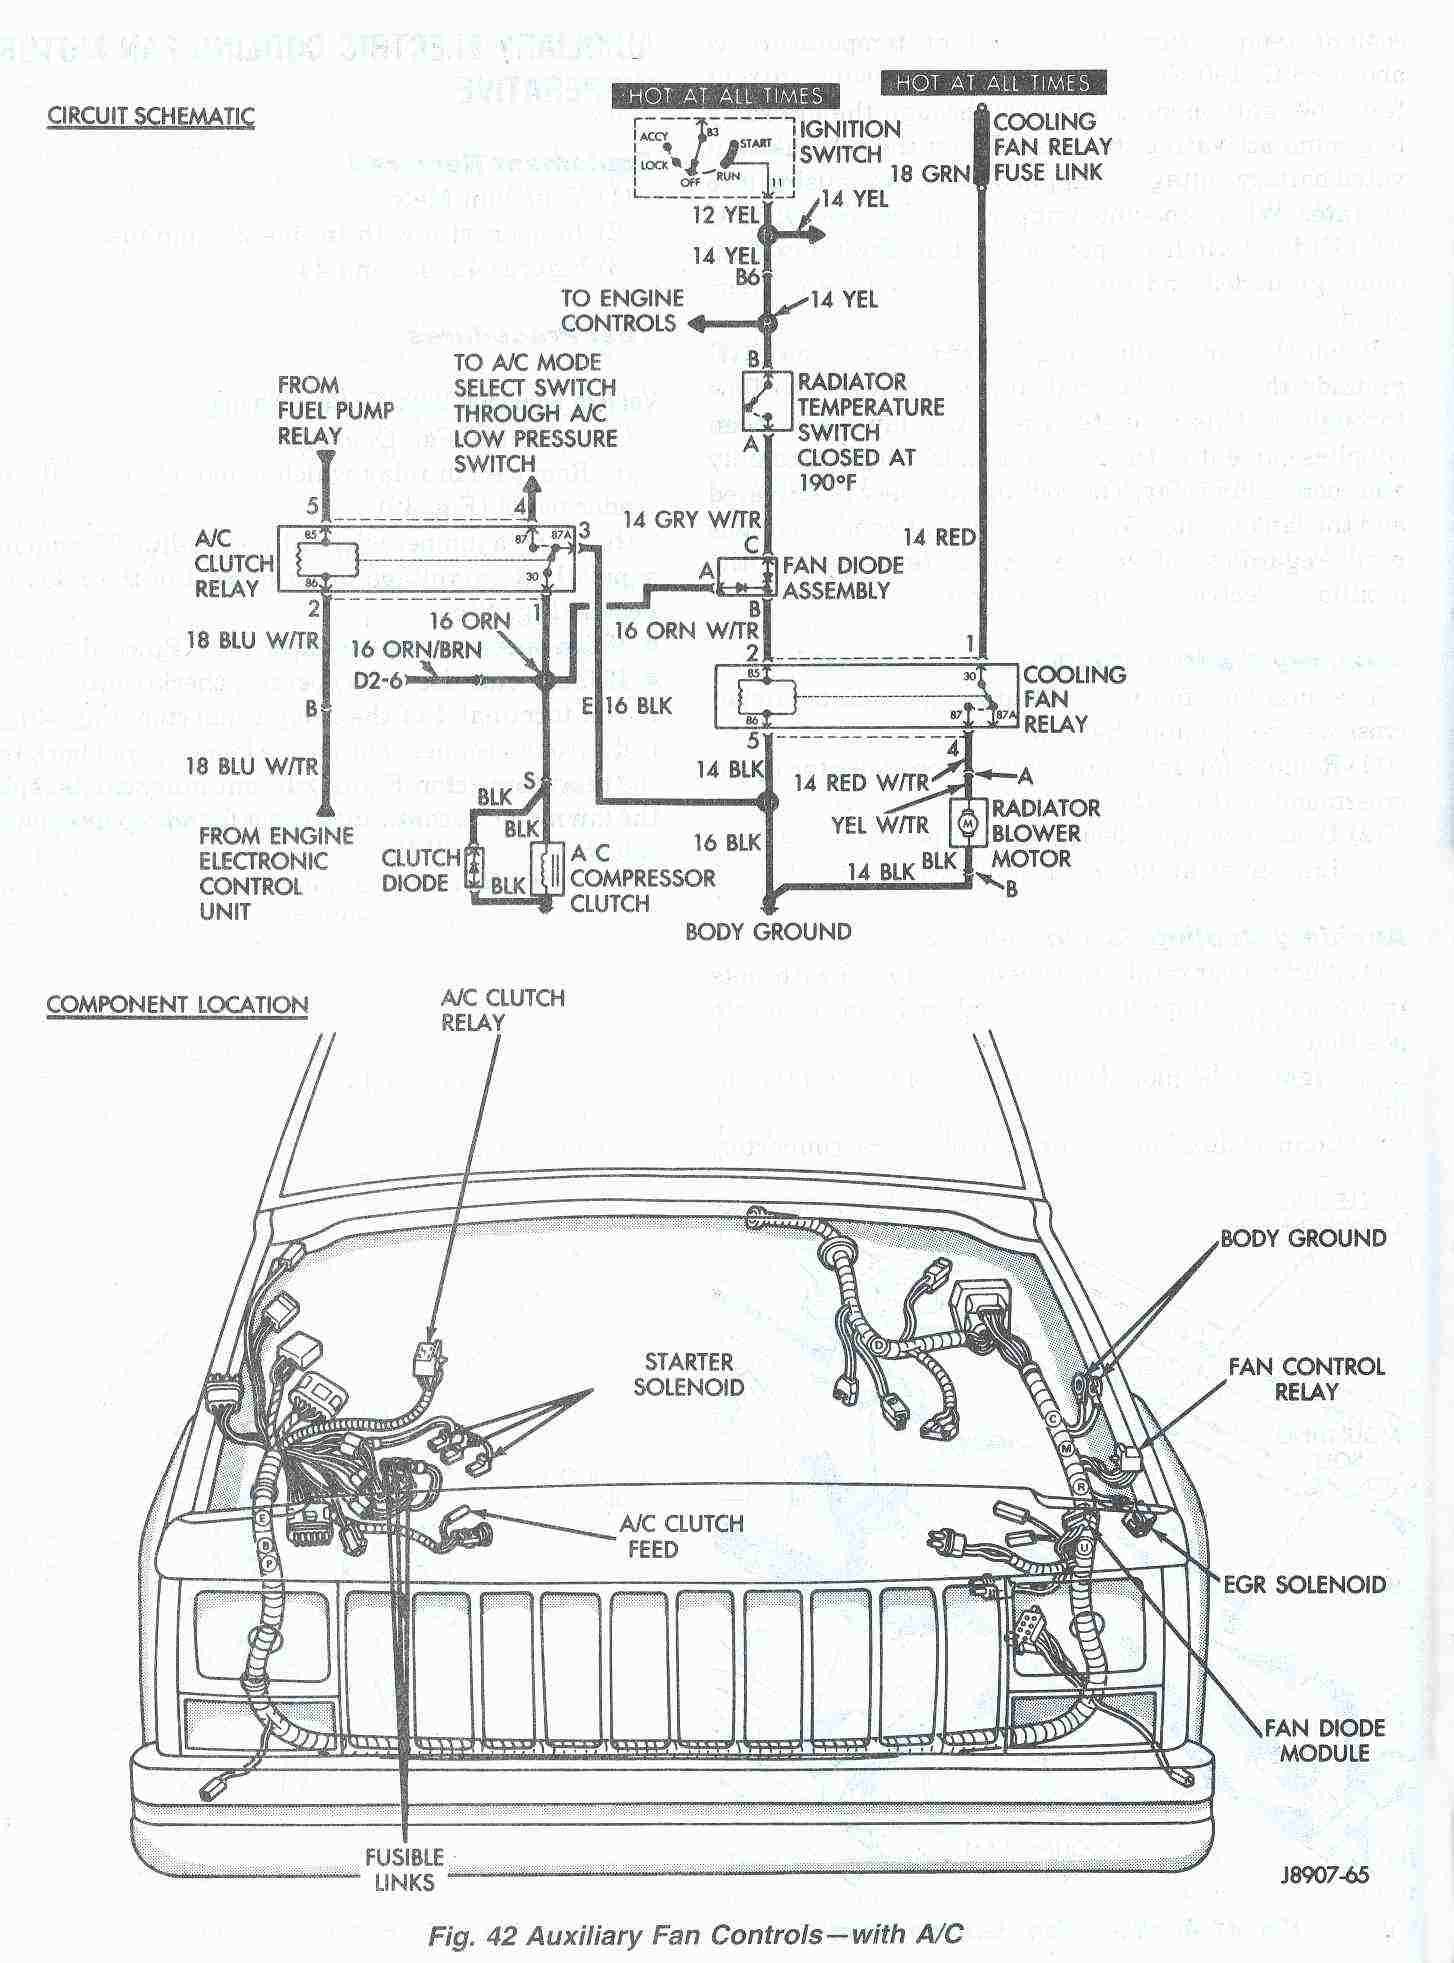 e8c83109bad6c41d377df8c1cb7a8dc4 at the asd relay if vole is not b16 check fuse 20 30 a good there 99 jeep cherokee sport fuse diagram at suagrazia.org